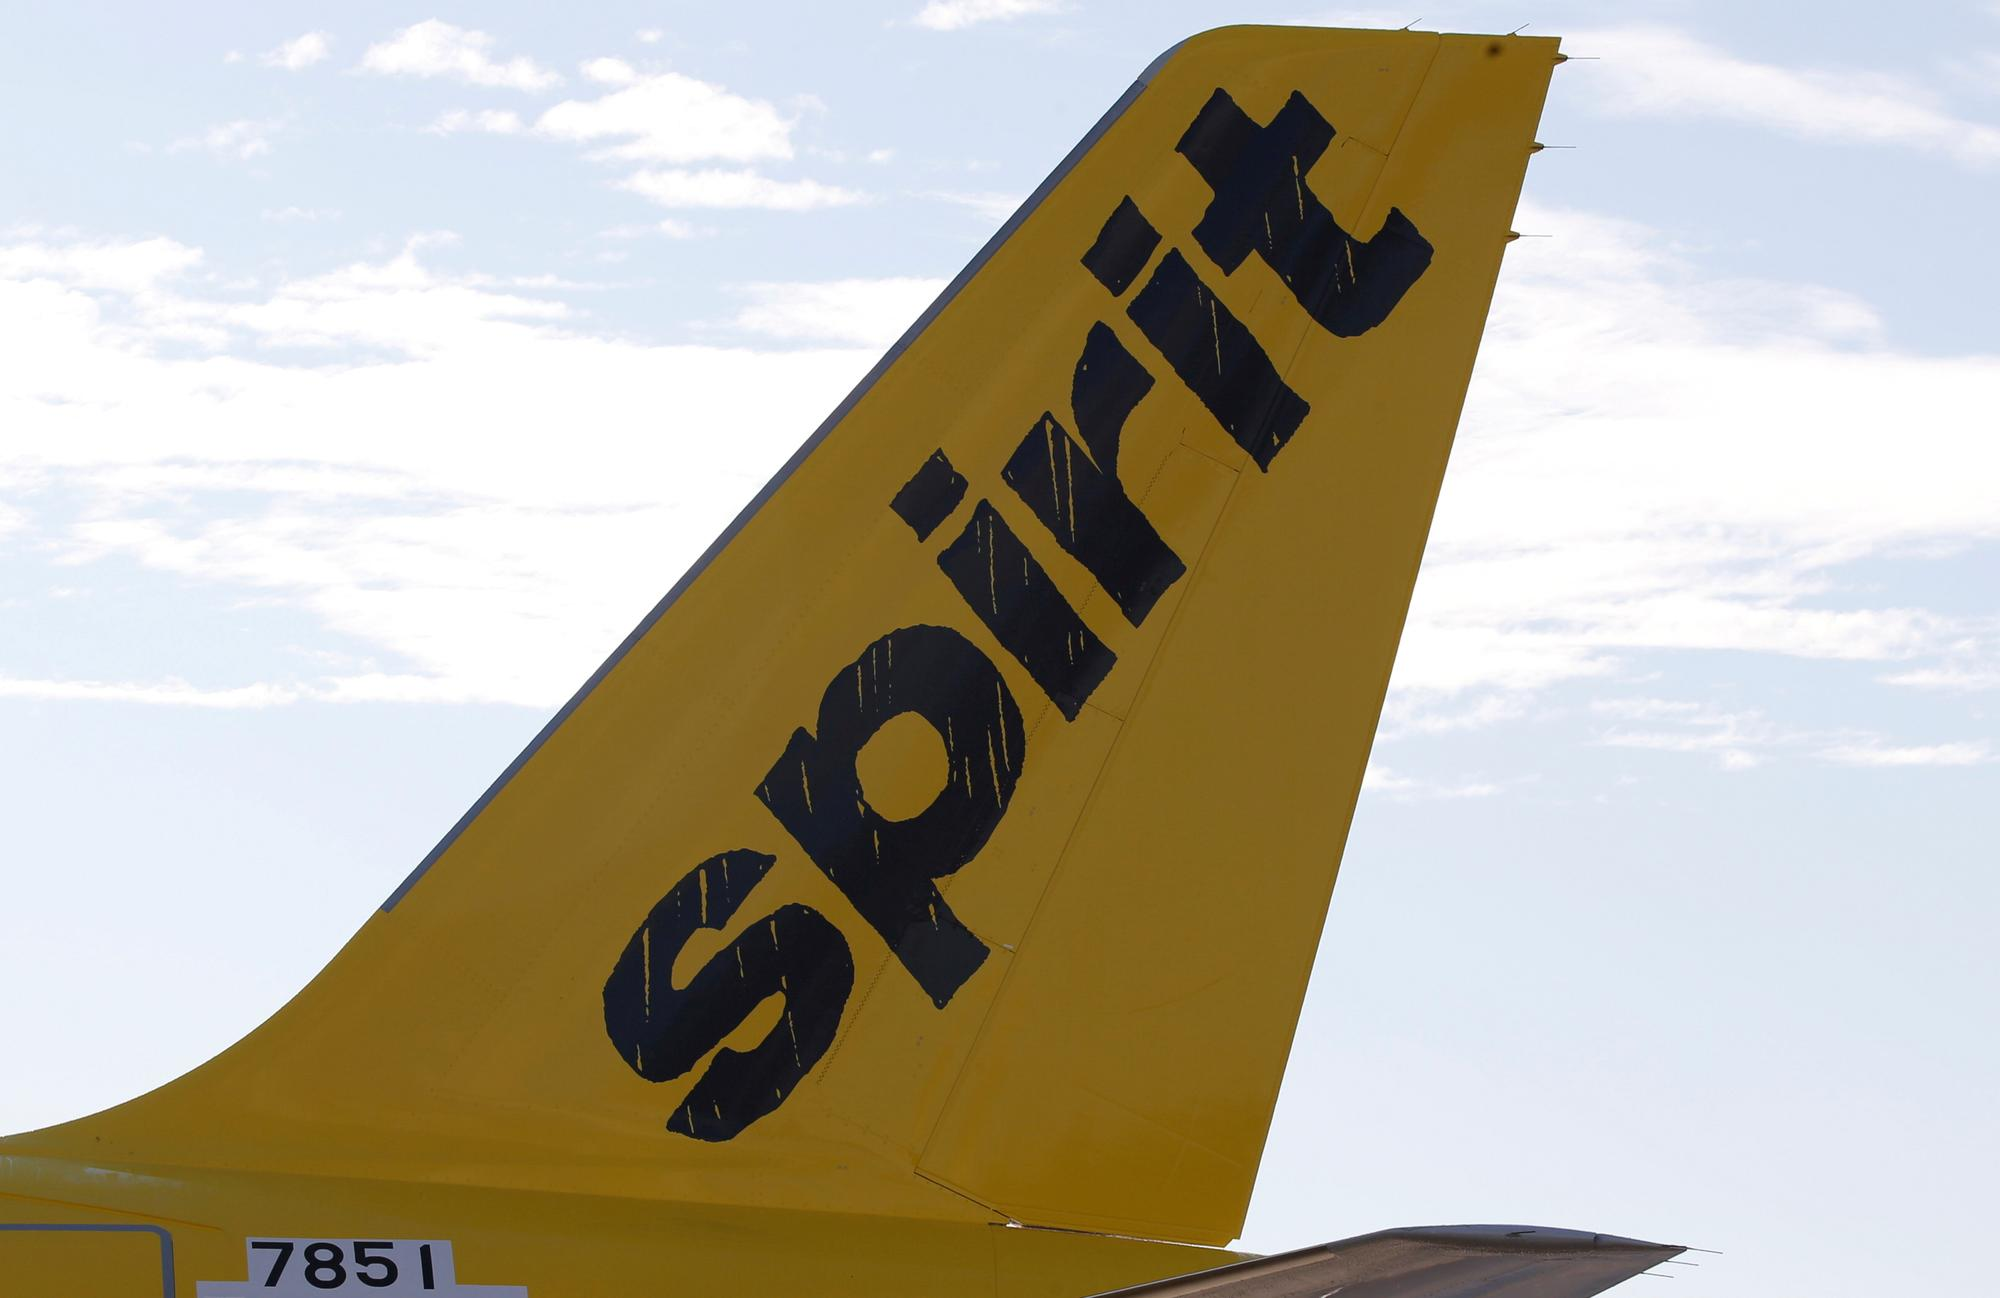 Spirit says working with Airbus, trade representatives on tariff impact